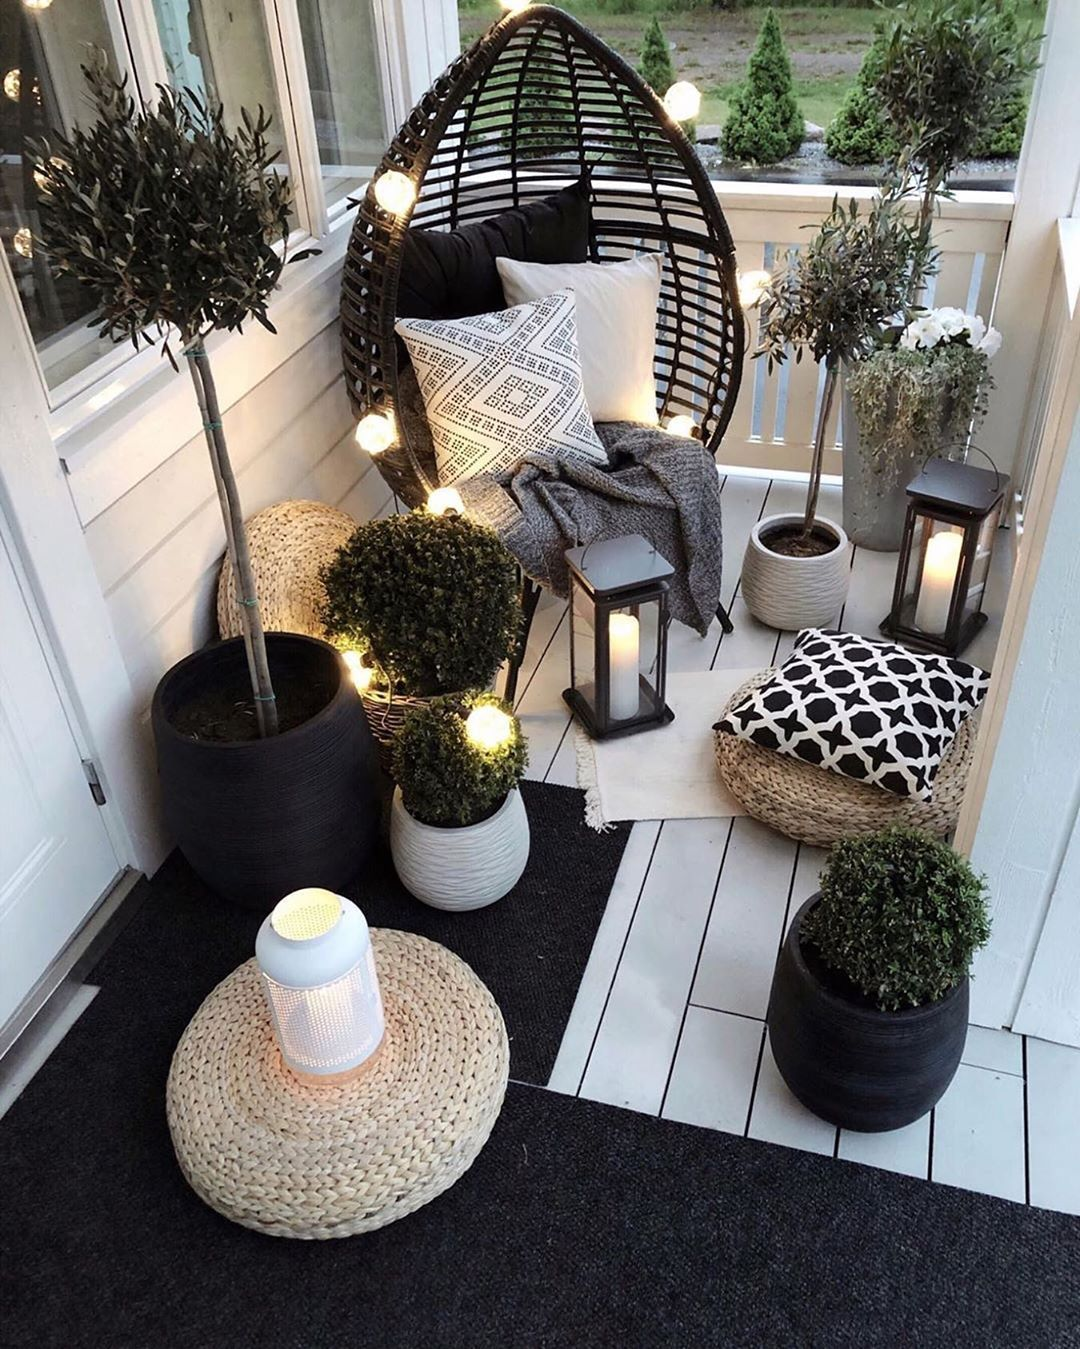 Follow Us Nordicliving For More Daily Interior Inspo